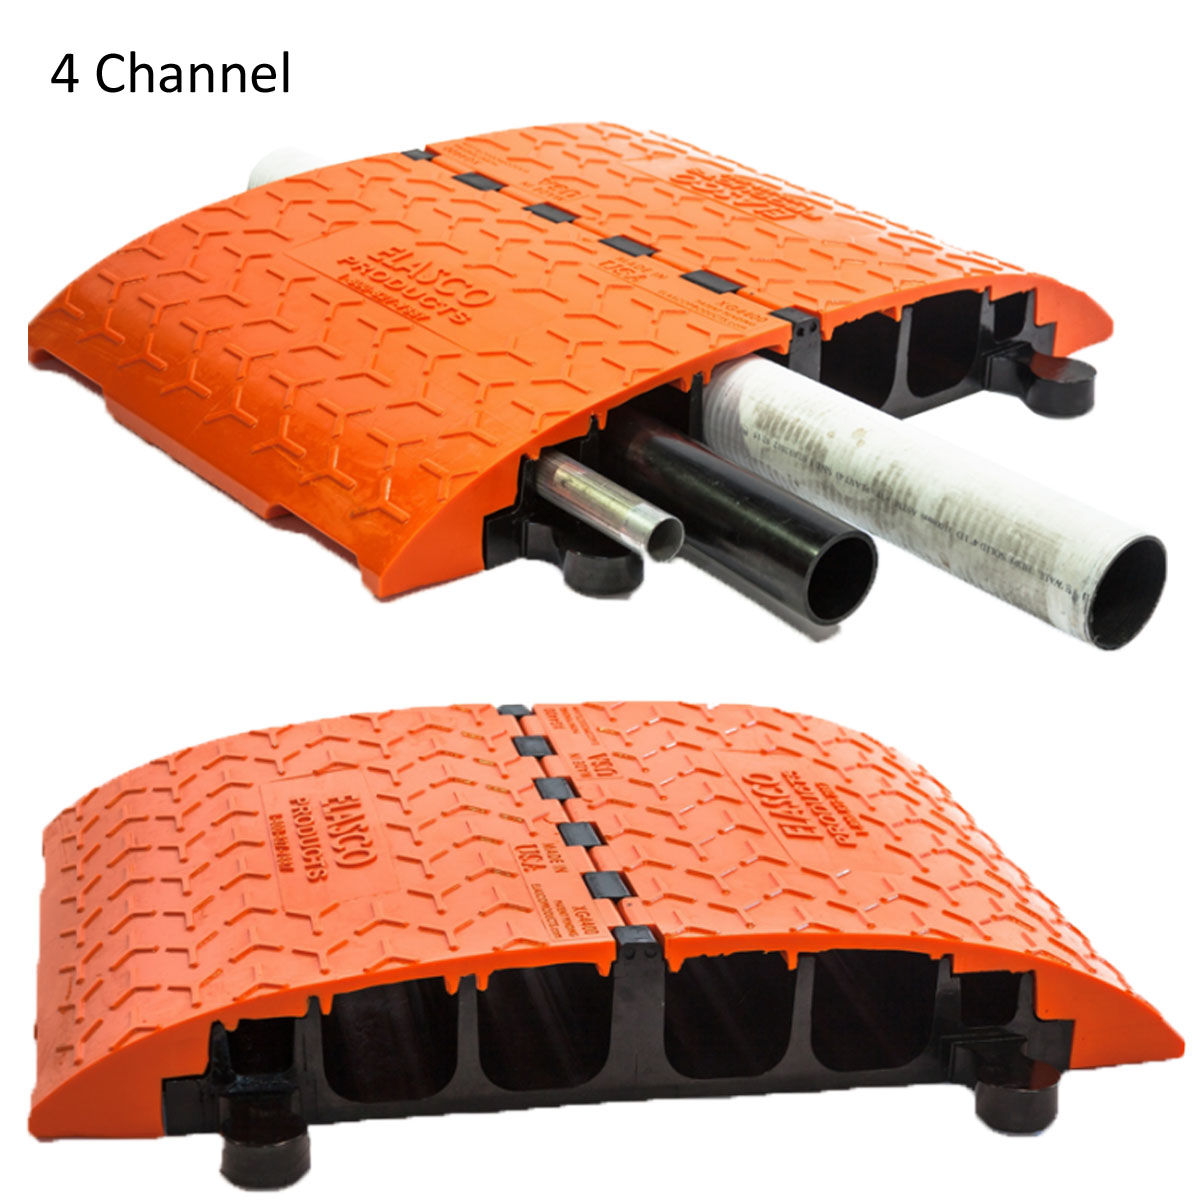 xtreme guards heavy duty cable protectors load capacity 30 to 40 tons 2 4 channel elasco. Black Bedroom Furniture Sets. Home Design Ideas